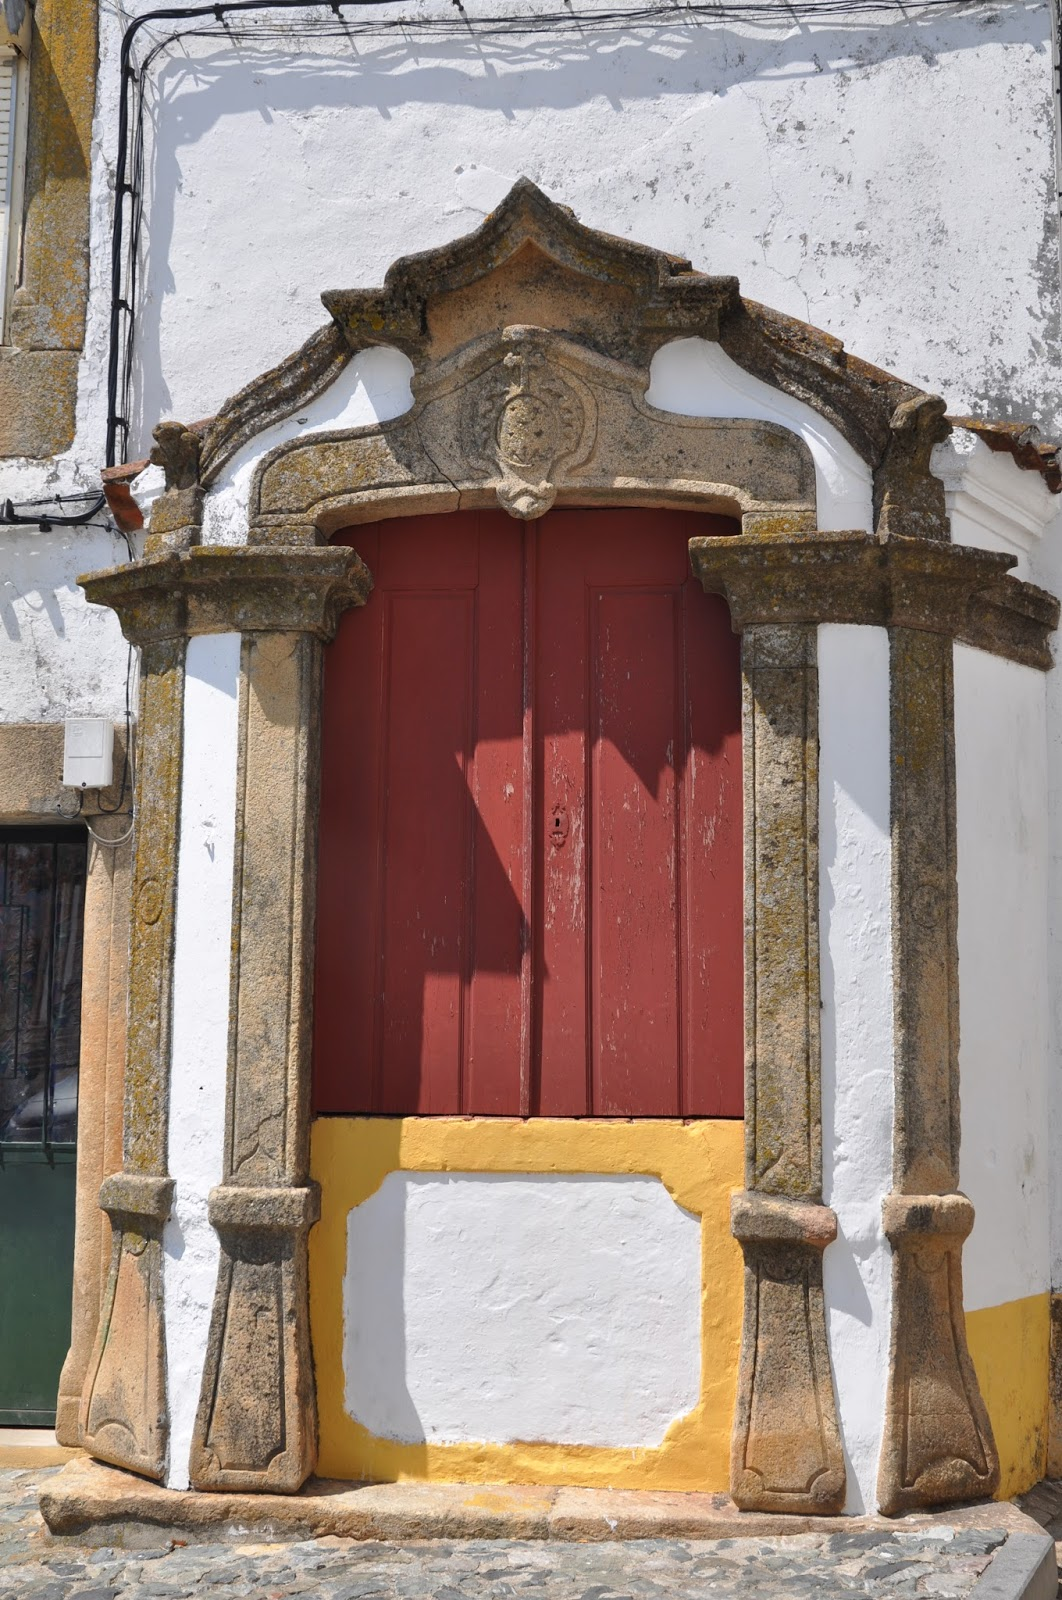 Iolanda andrade castelo de vide alentejo portugal the castle existence of a jewish quarter outside its walls such as jewish symbols carved into door frames and the small sefardite synagogue itself have turned it buycottarizona Images